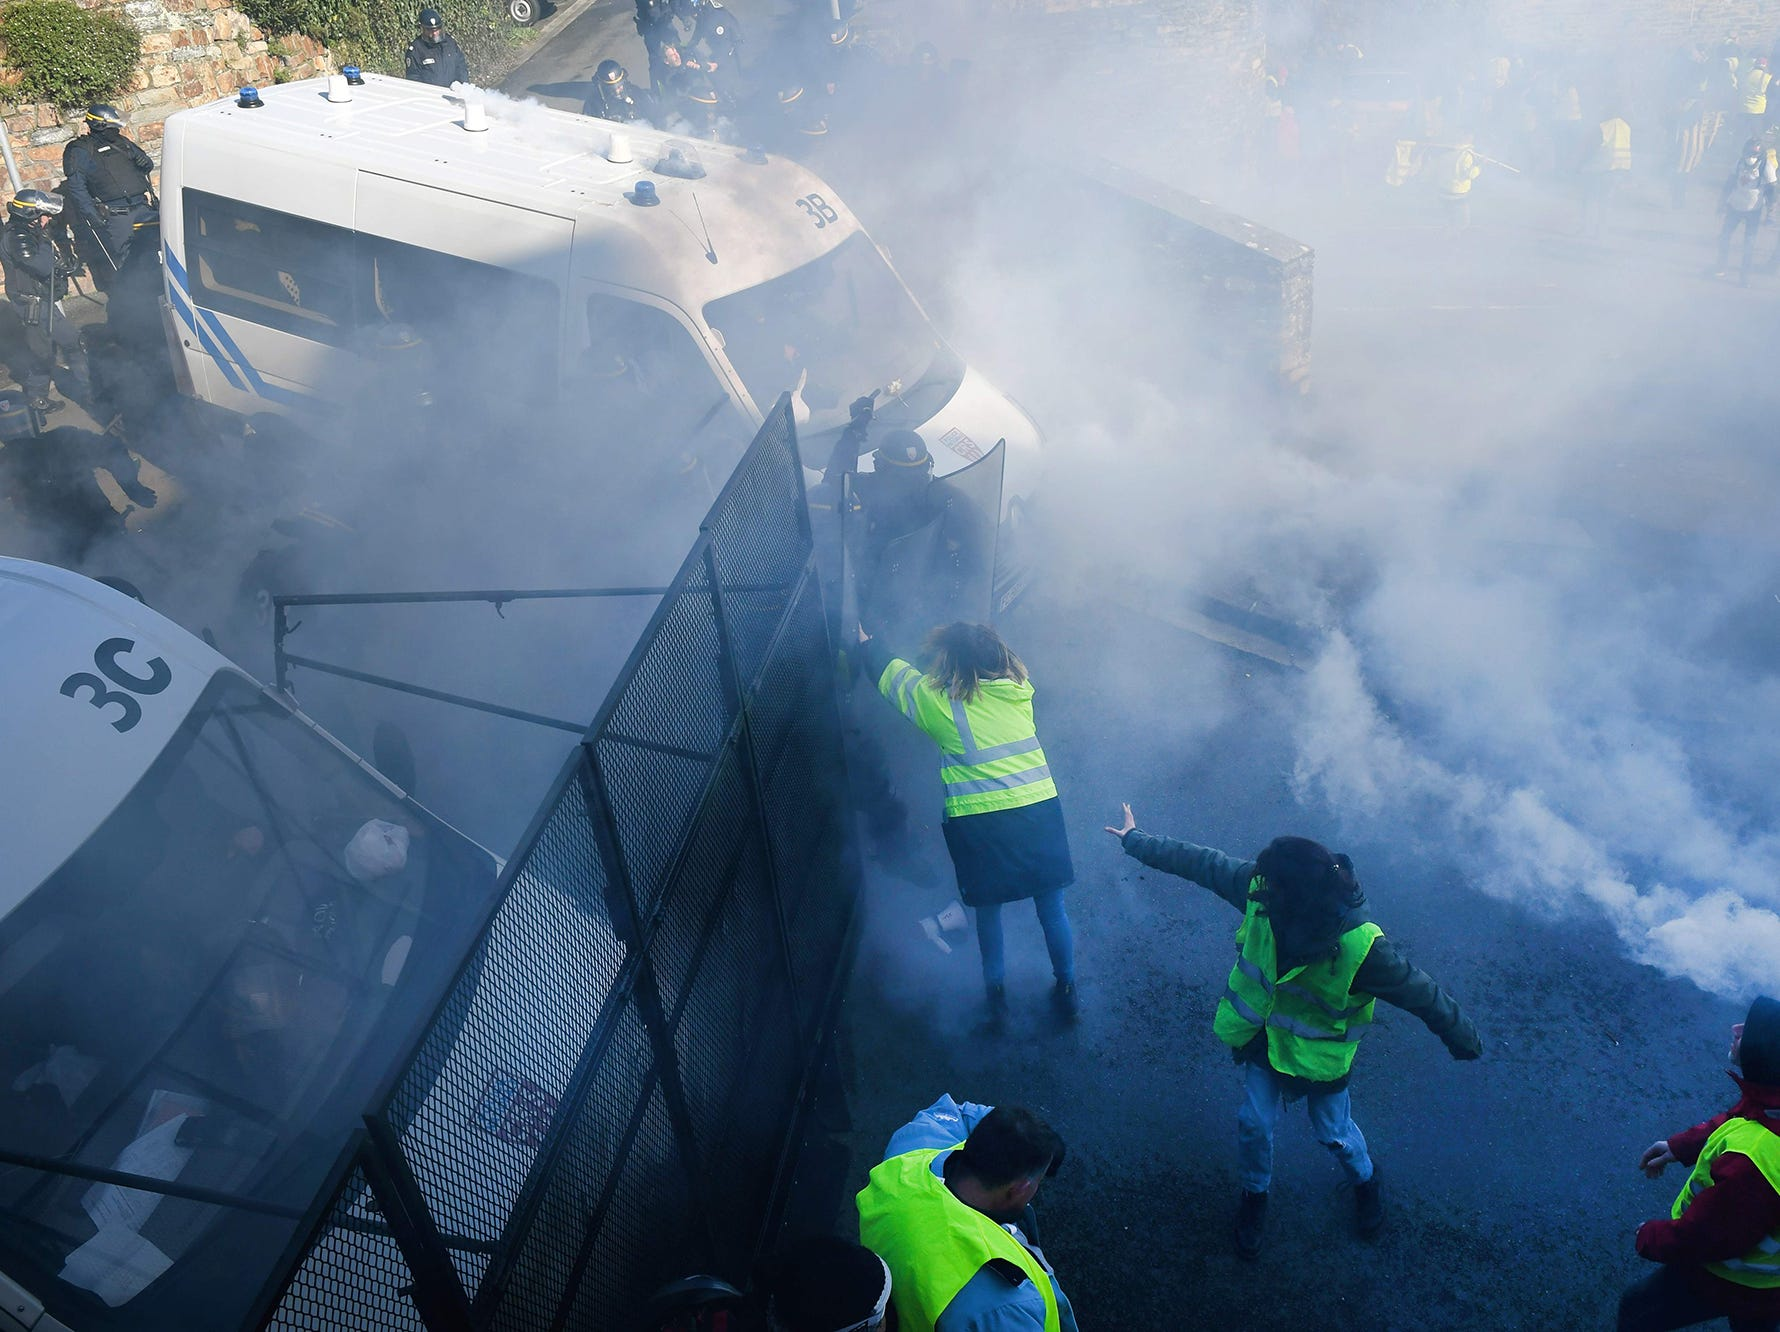 "Protestors are teargassed by authorities while taking part in an anti-government demonstration called by the Yellow Vests ""Gilets Jaunes"" movement in front of the sous-prefecture of Morlaix, western France on Feb. 2, 2019."